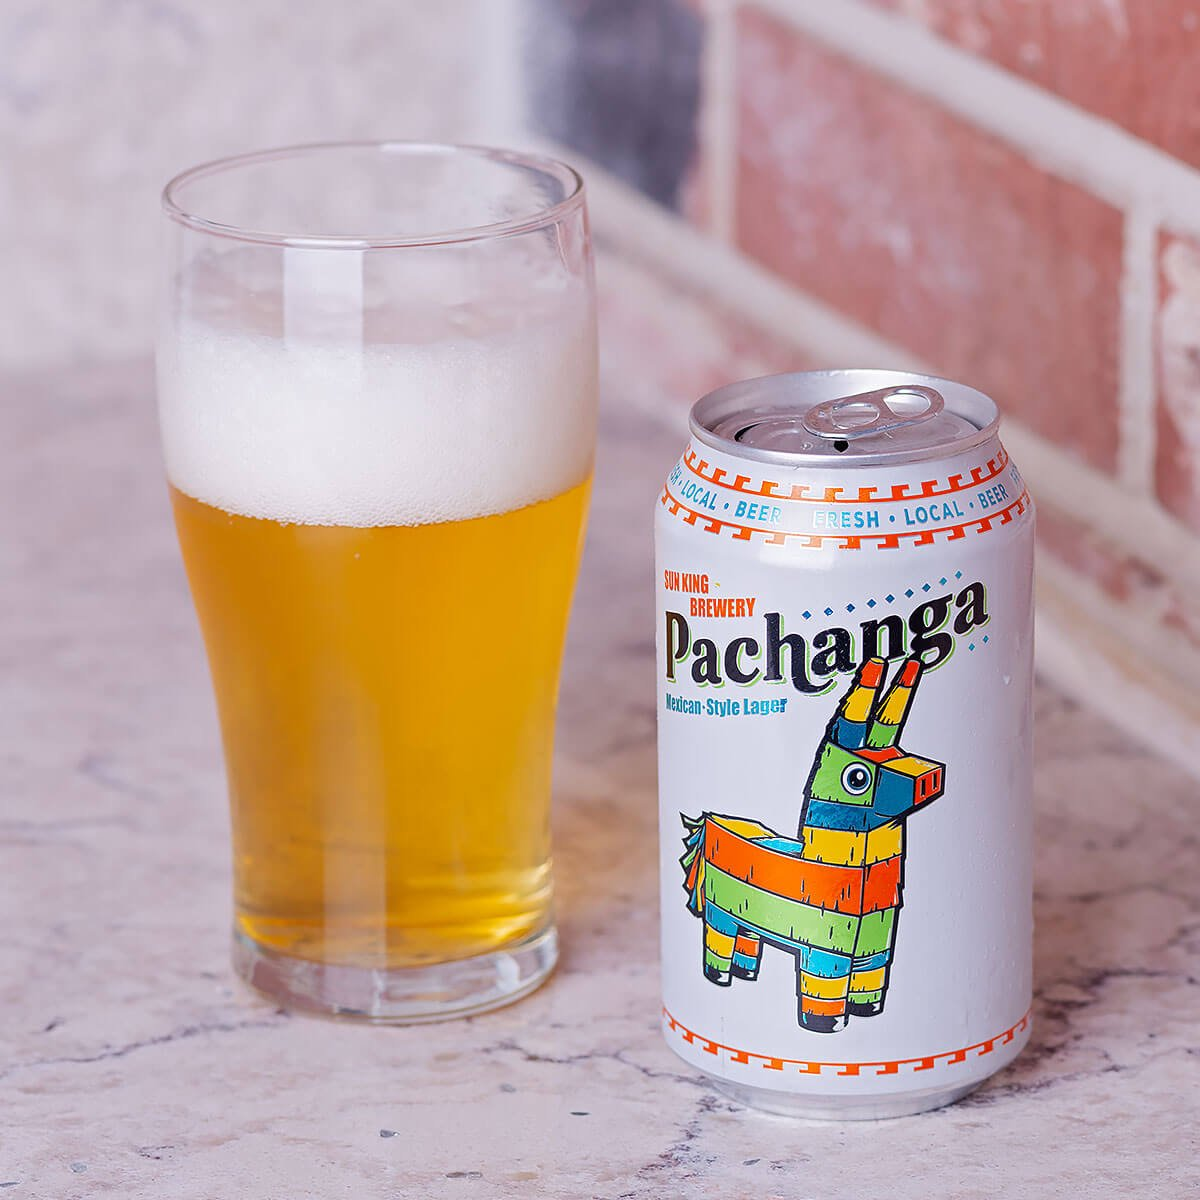 Pachanga is an International Pale Lager by Sun King Brewery that blends corn, cracker, and honey with floral, peppery hops and lime.